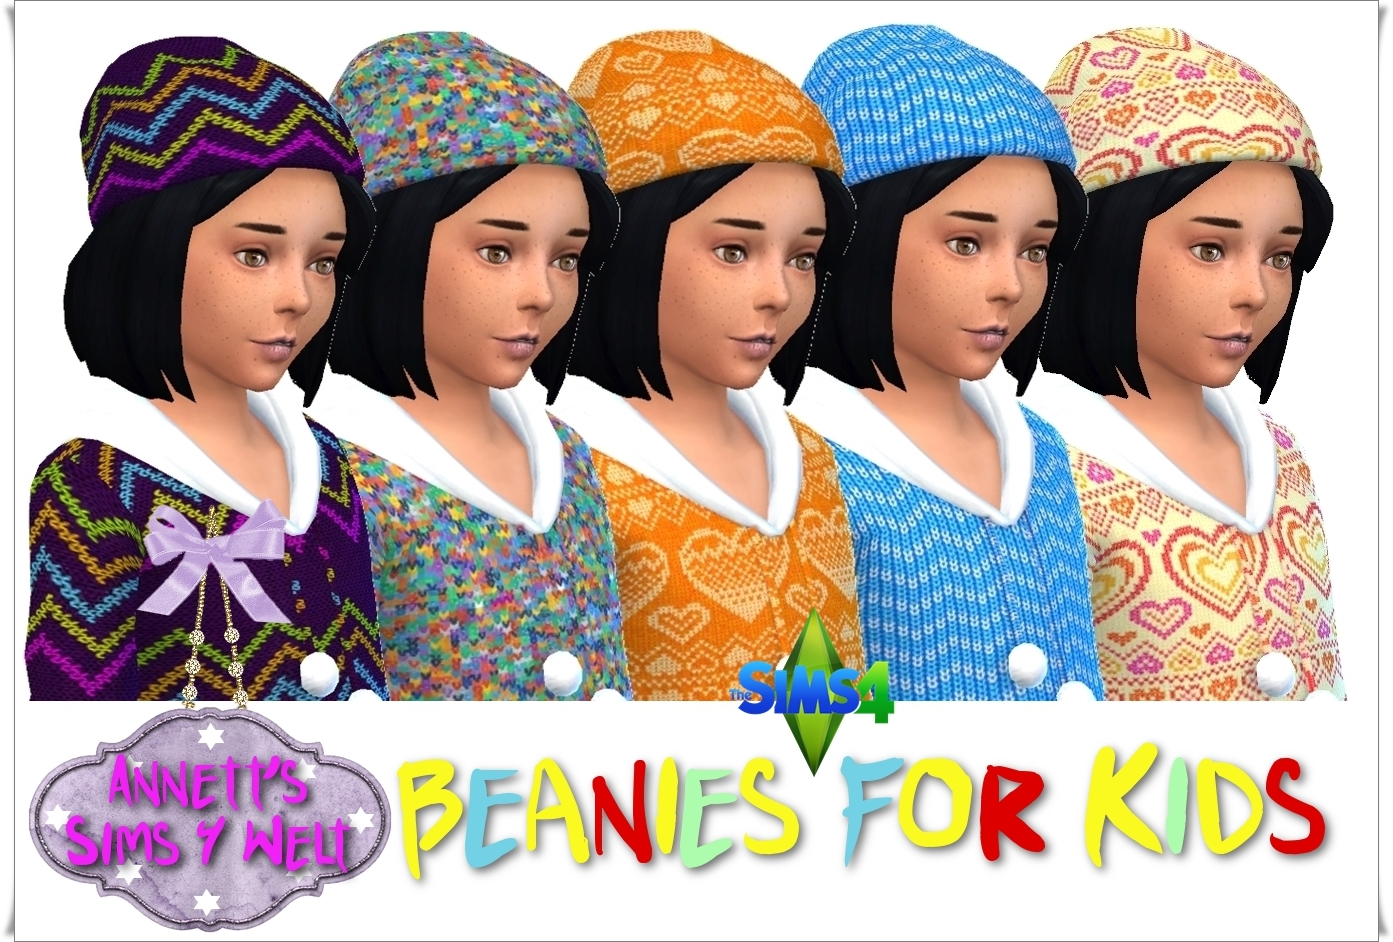 Beanies for Girls by Annett85